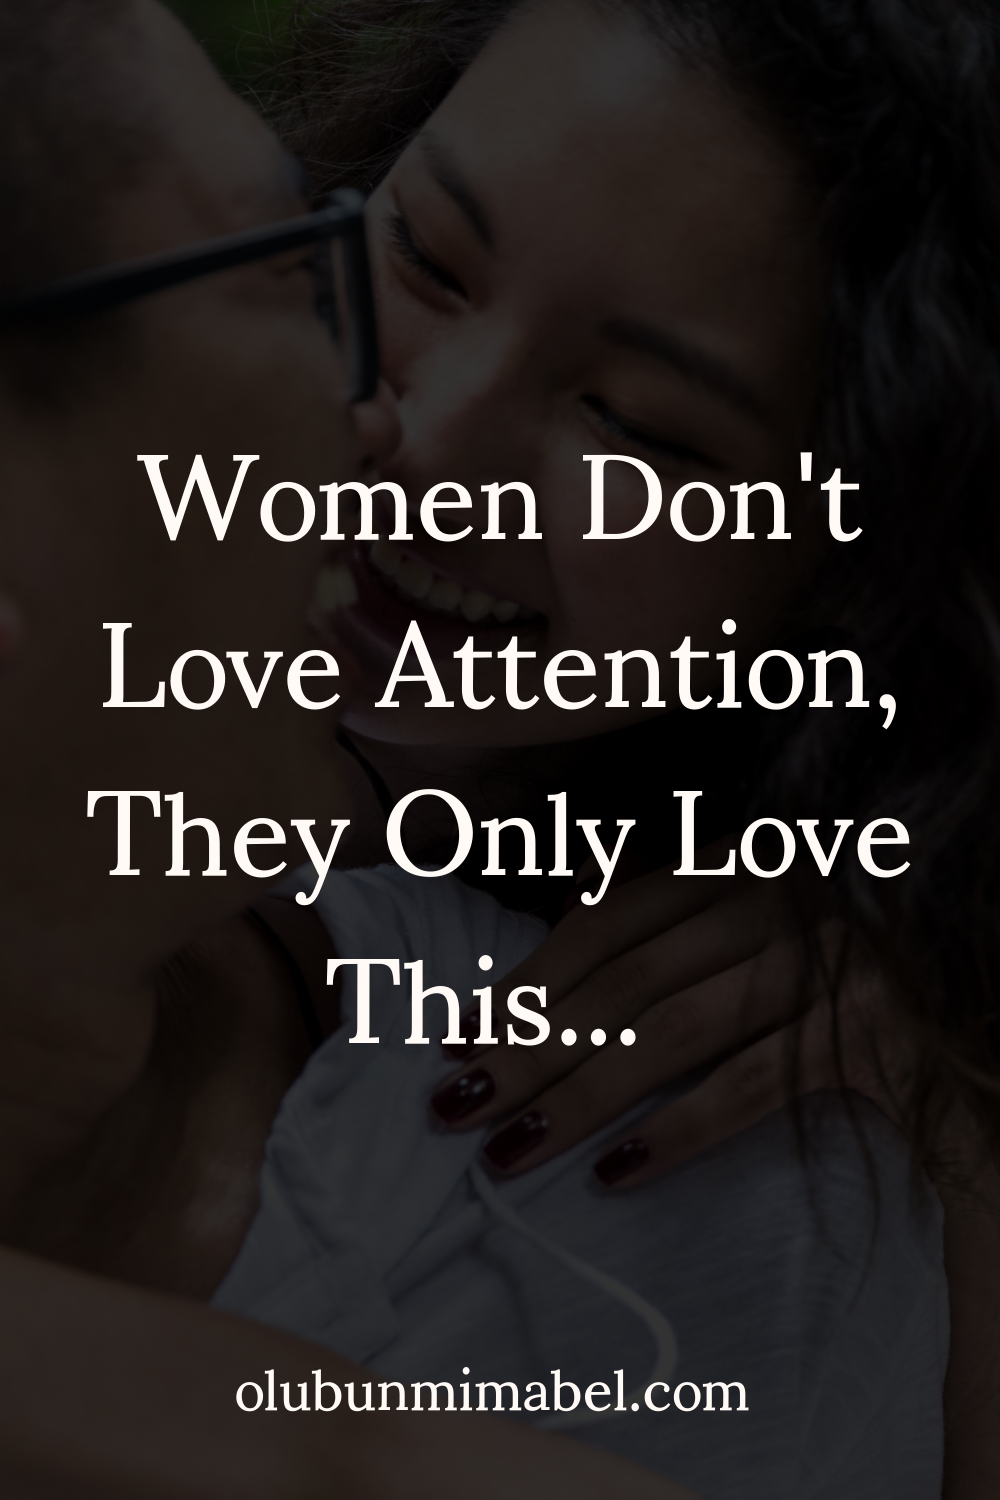 Women Don't Love Attention, They Love This